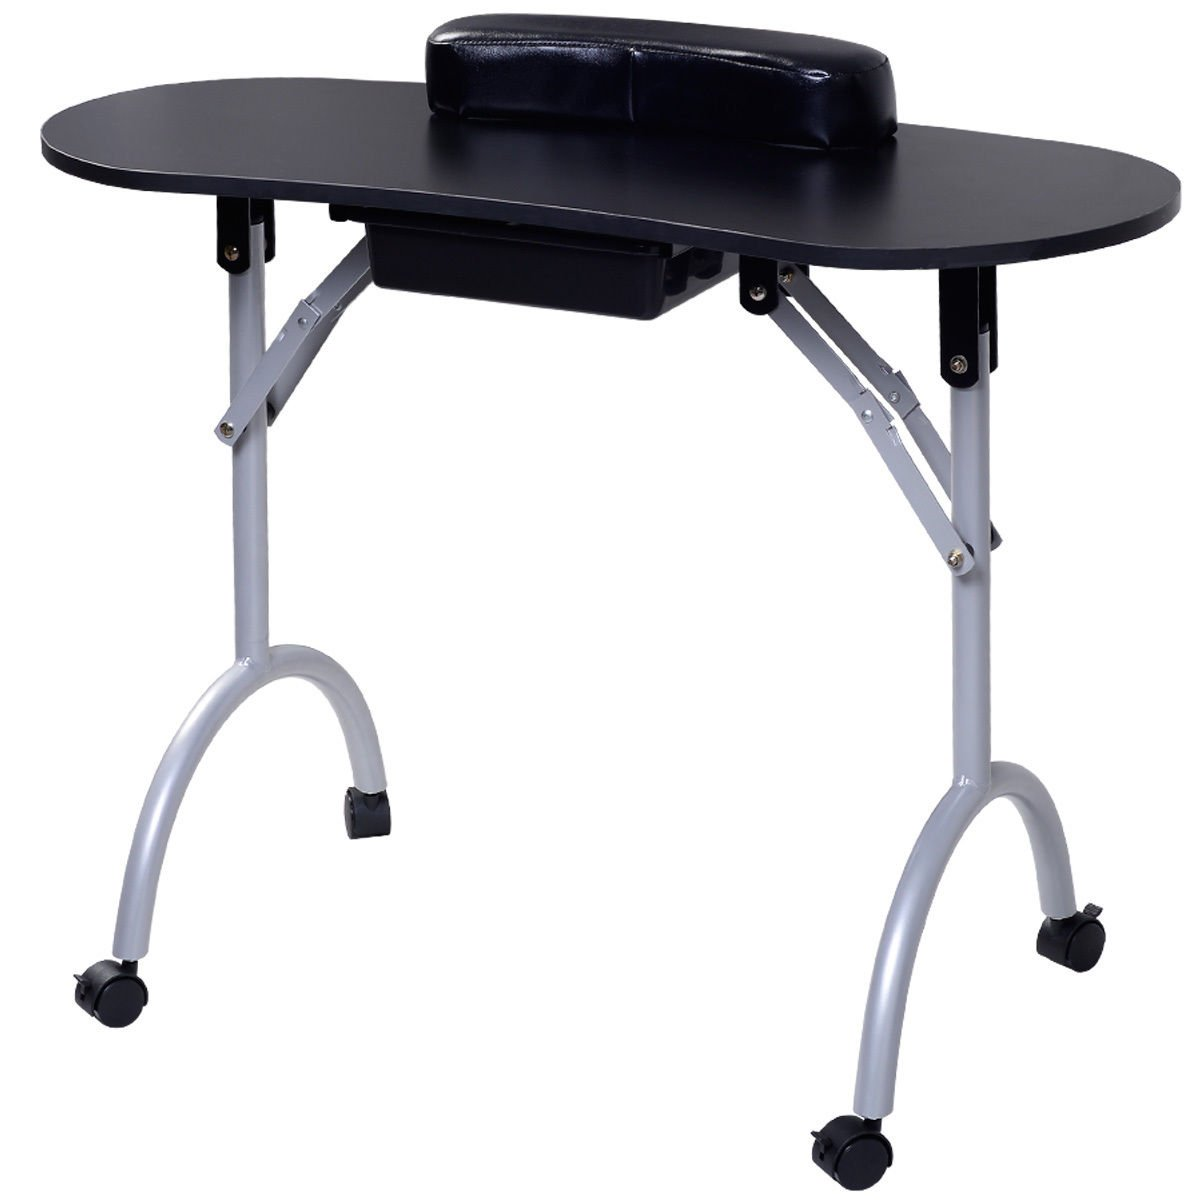 Mybesty Portable Manicure Nail Table Station Desk Spa Beauty Salon Equipment Black